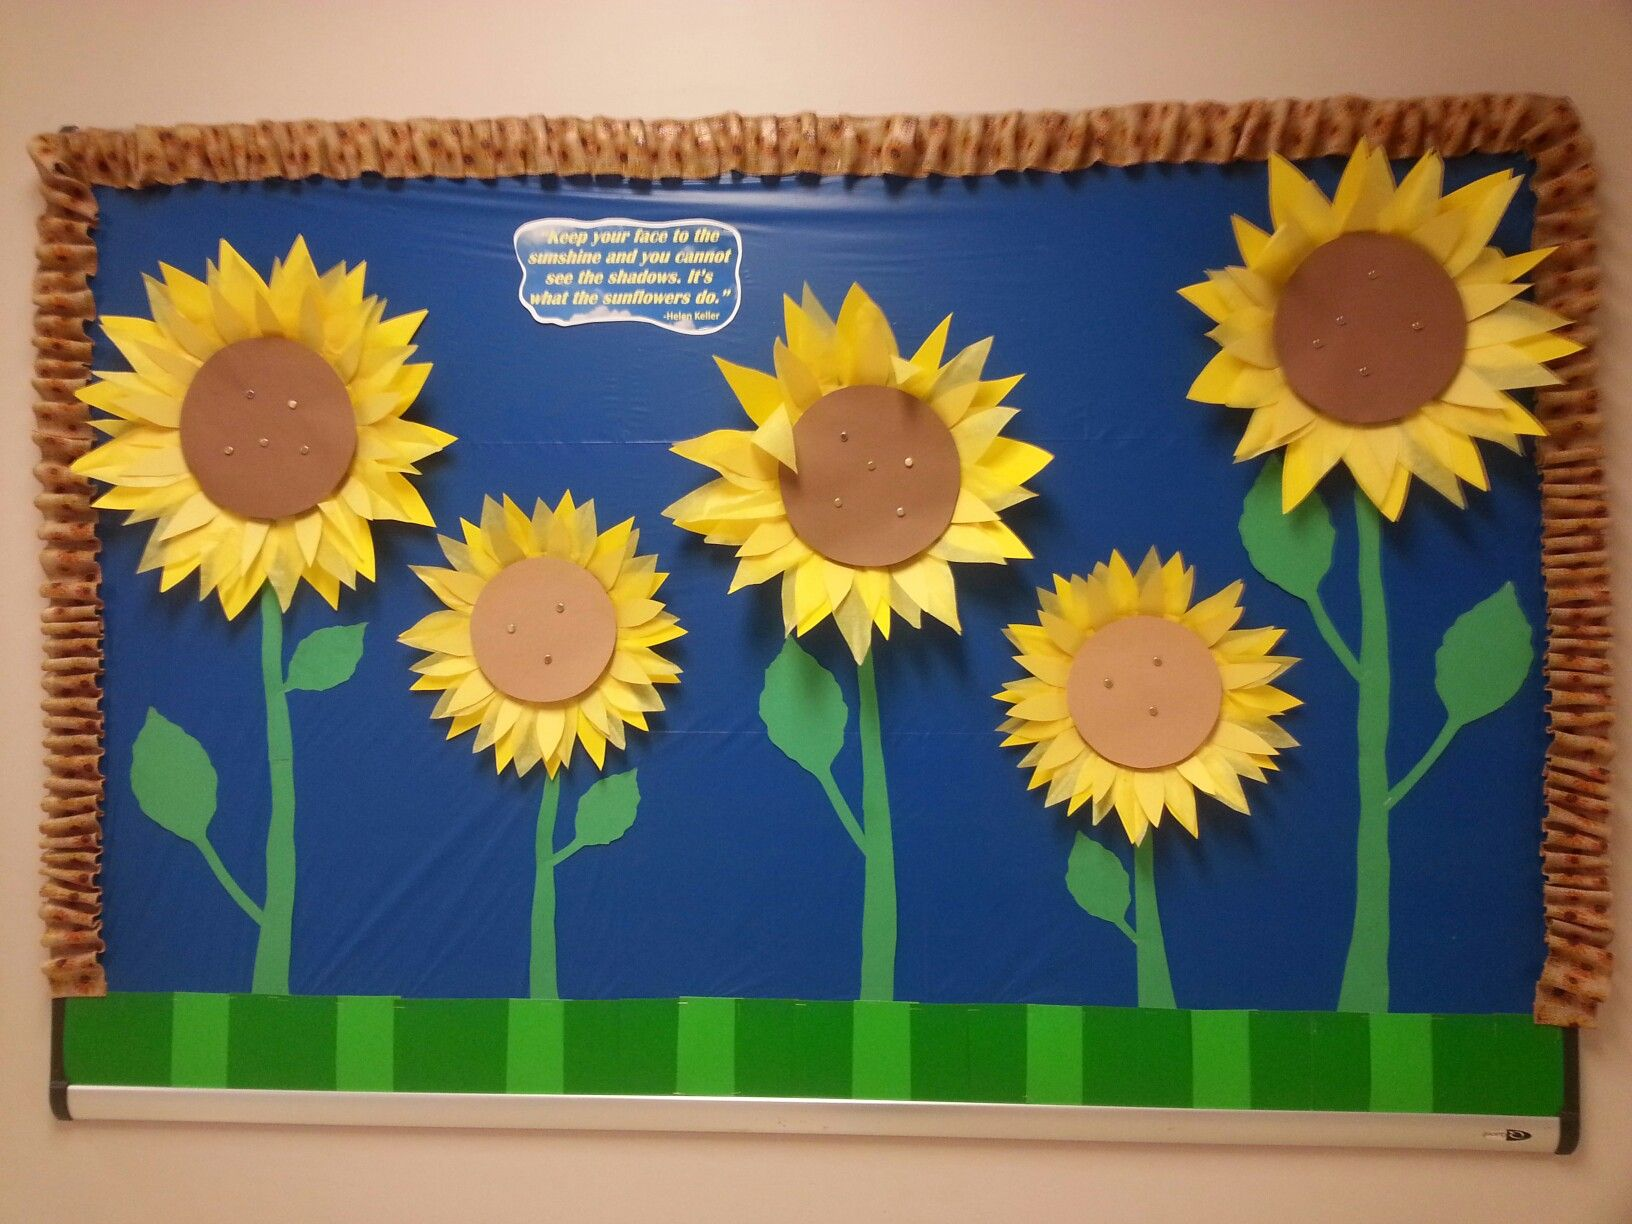 Sunflower Bulletin Board With Helen Keller Quote